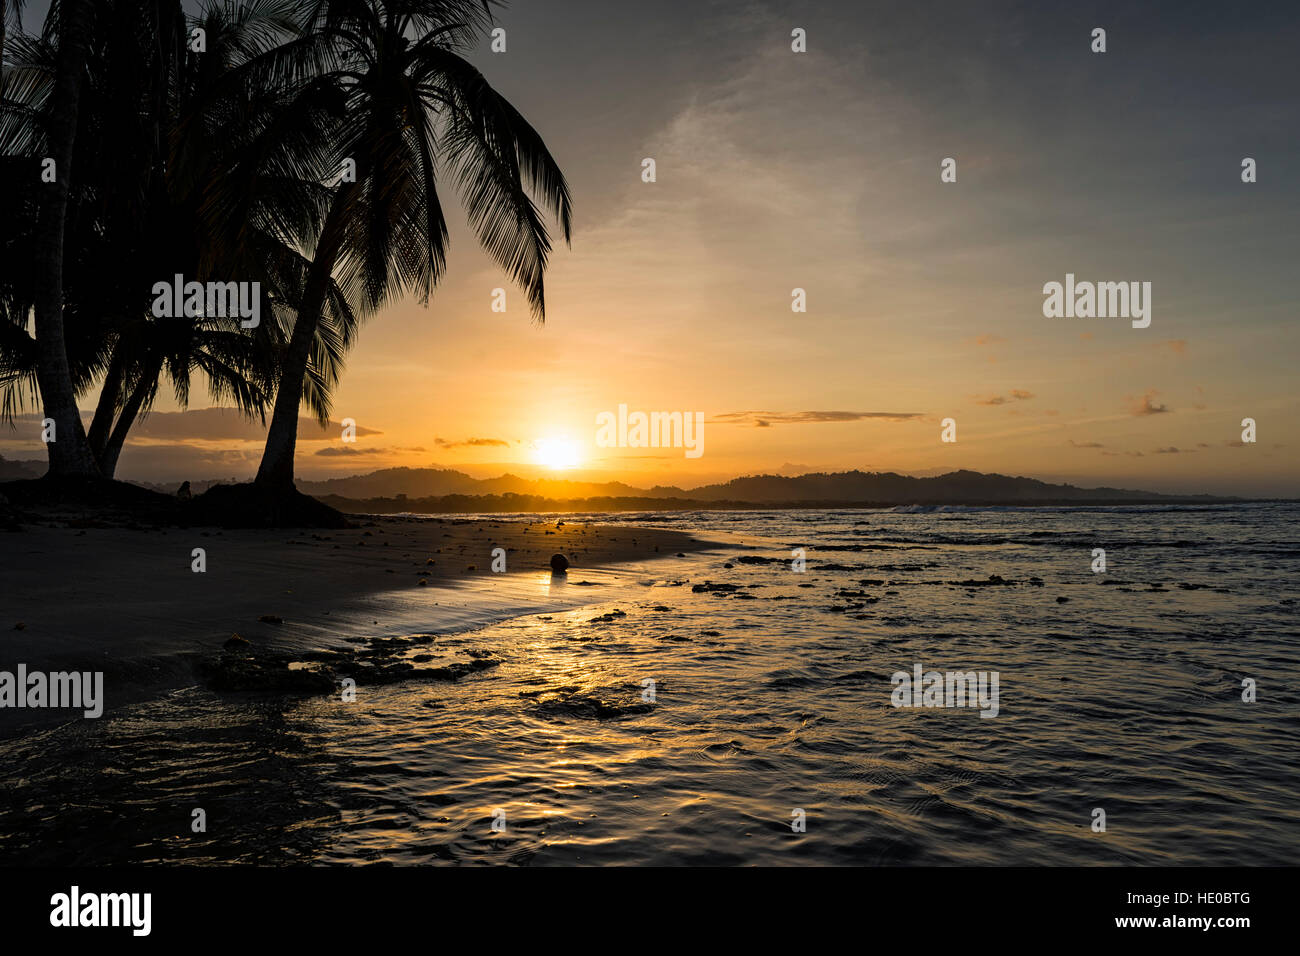 View of a beach with palm trees at sunset in Puerto Viejo de Talamanca, Costa Rica, Central America; Concept for - Stock Image